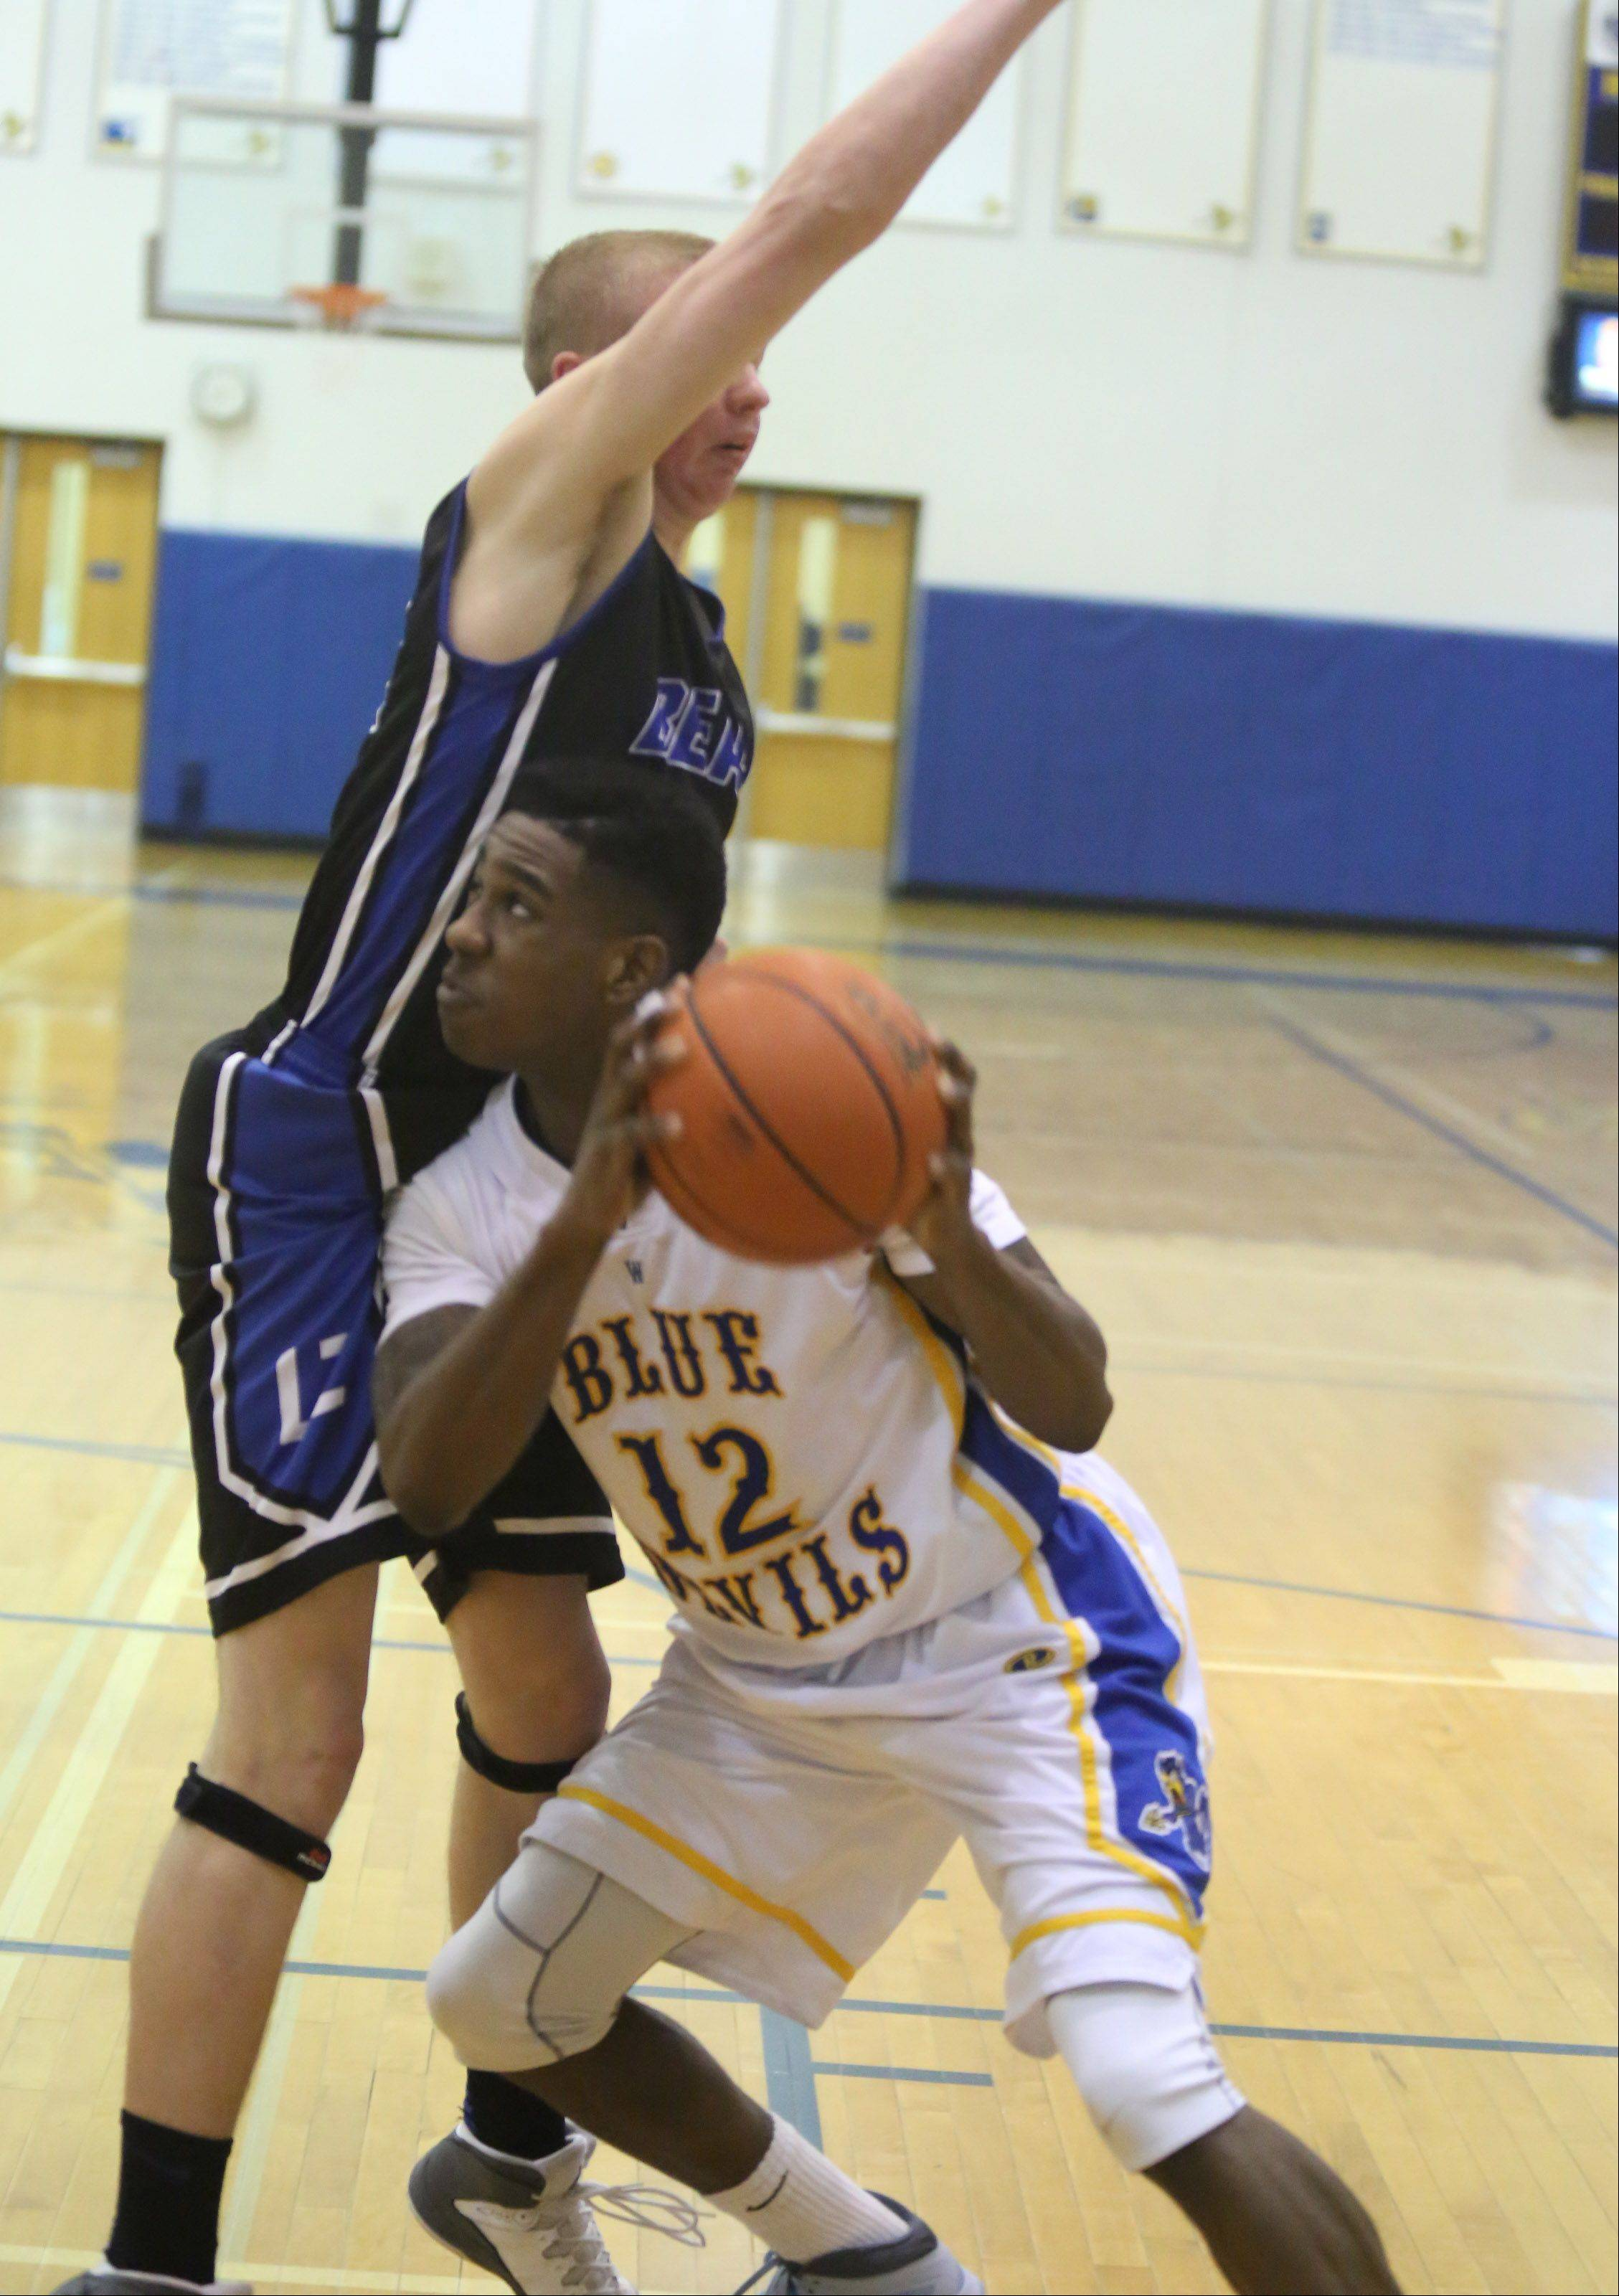 Warren forward Gregory Swane looks to put the ball up against Lake Zurich defender Brad Kruse.